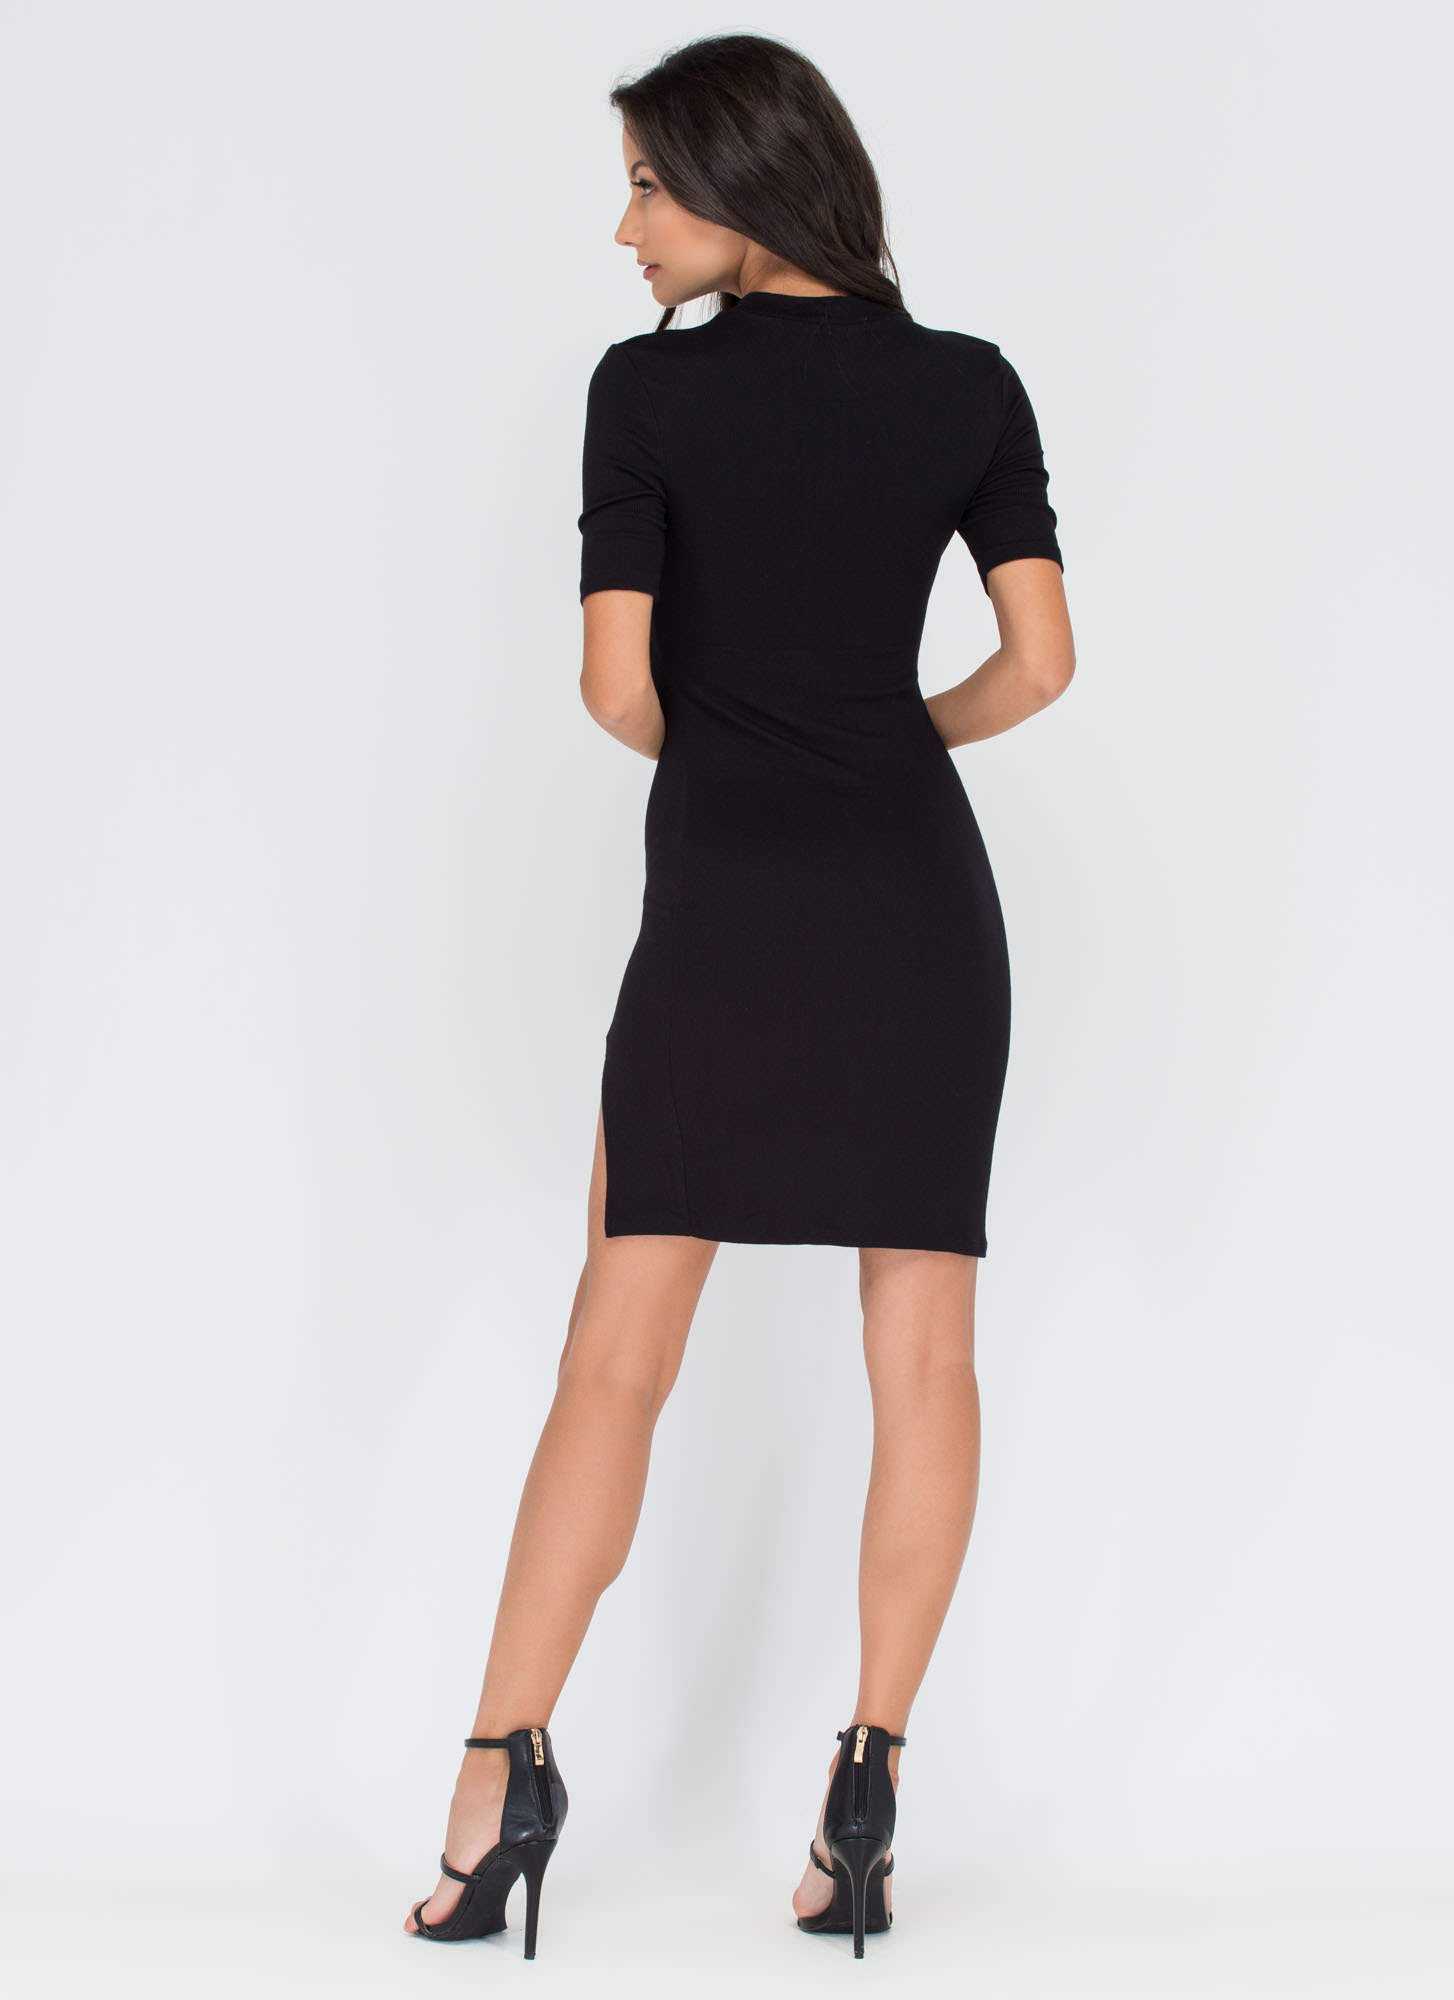 Mod About It Ribbed Midi Dress BLACK